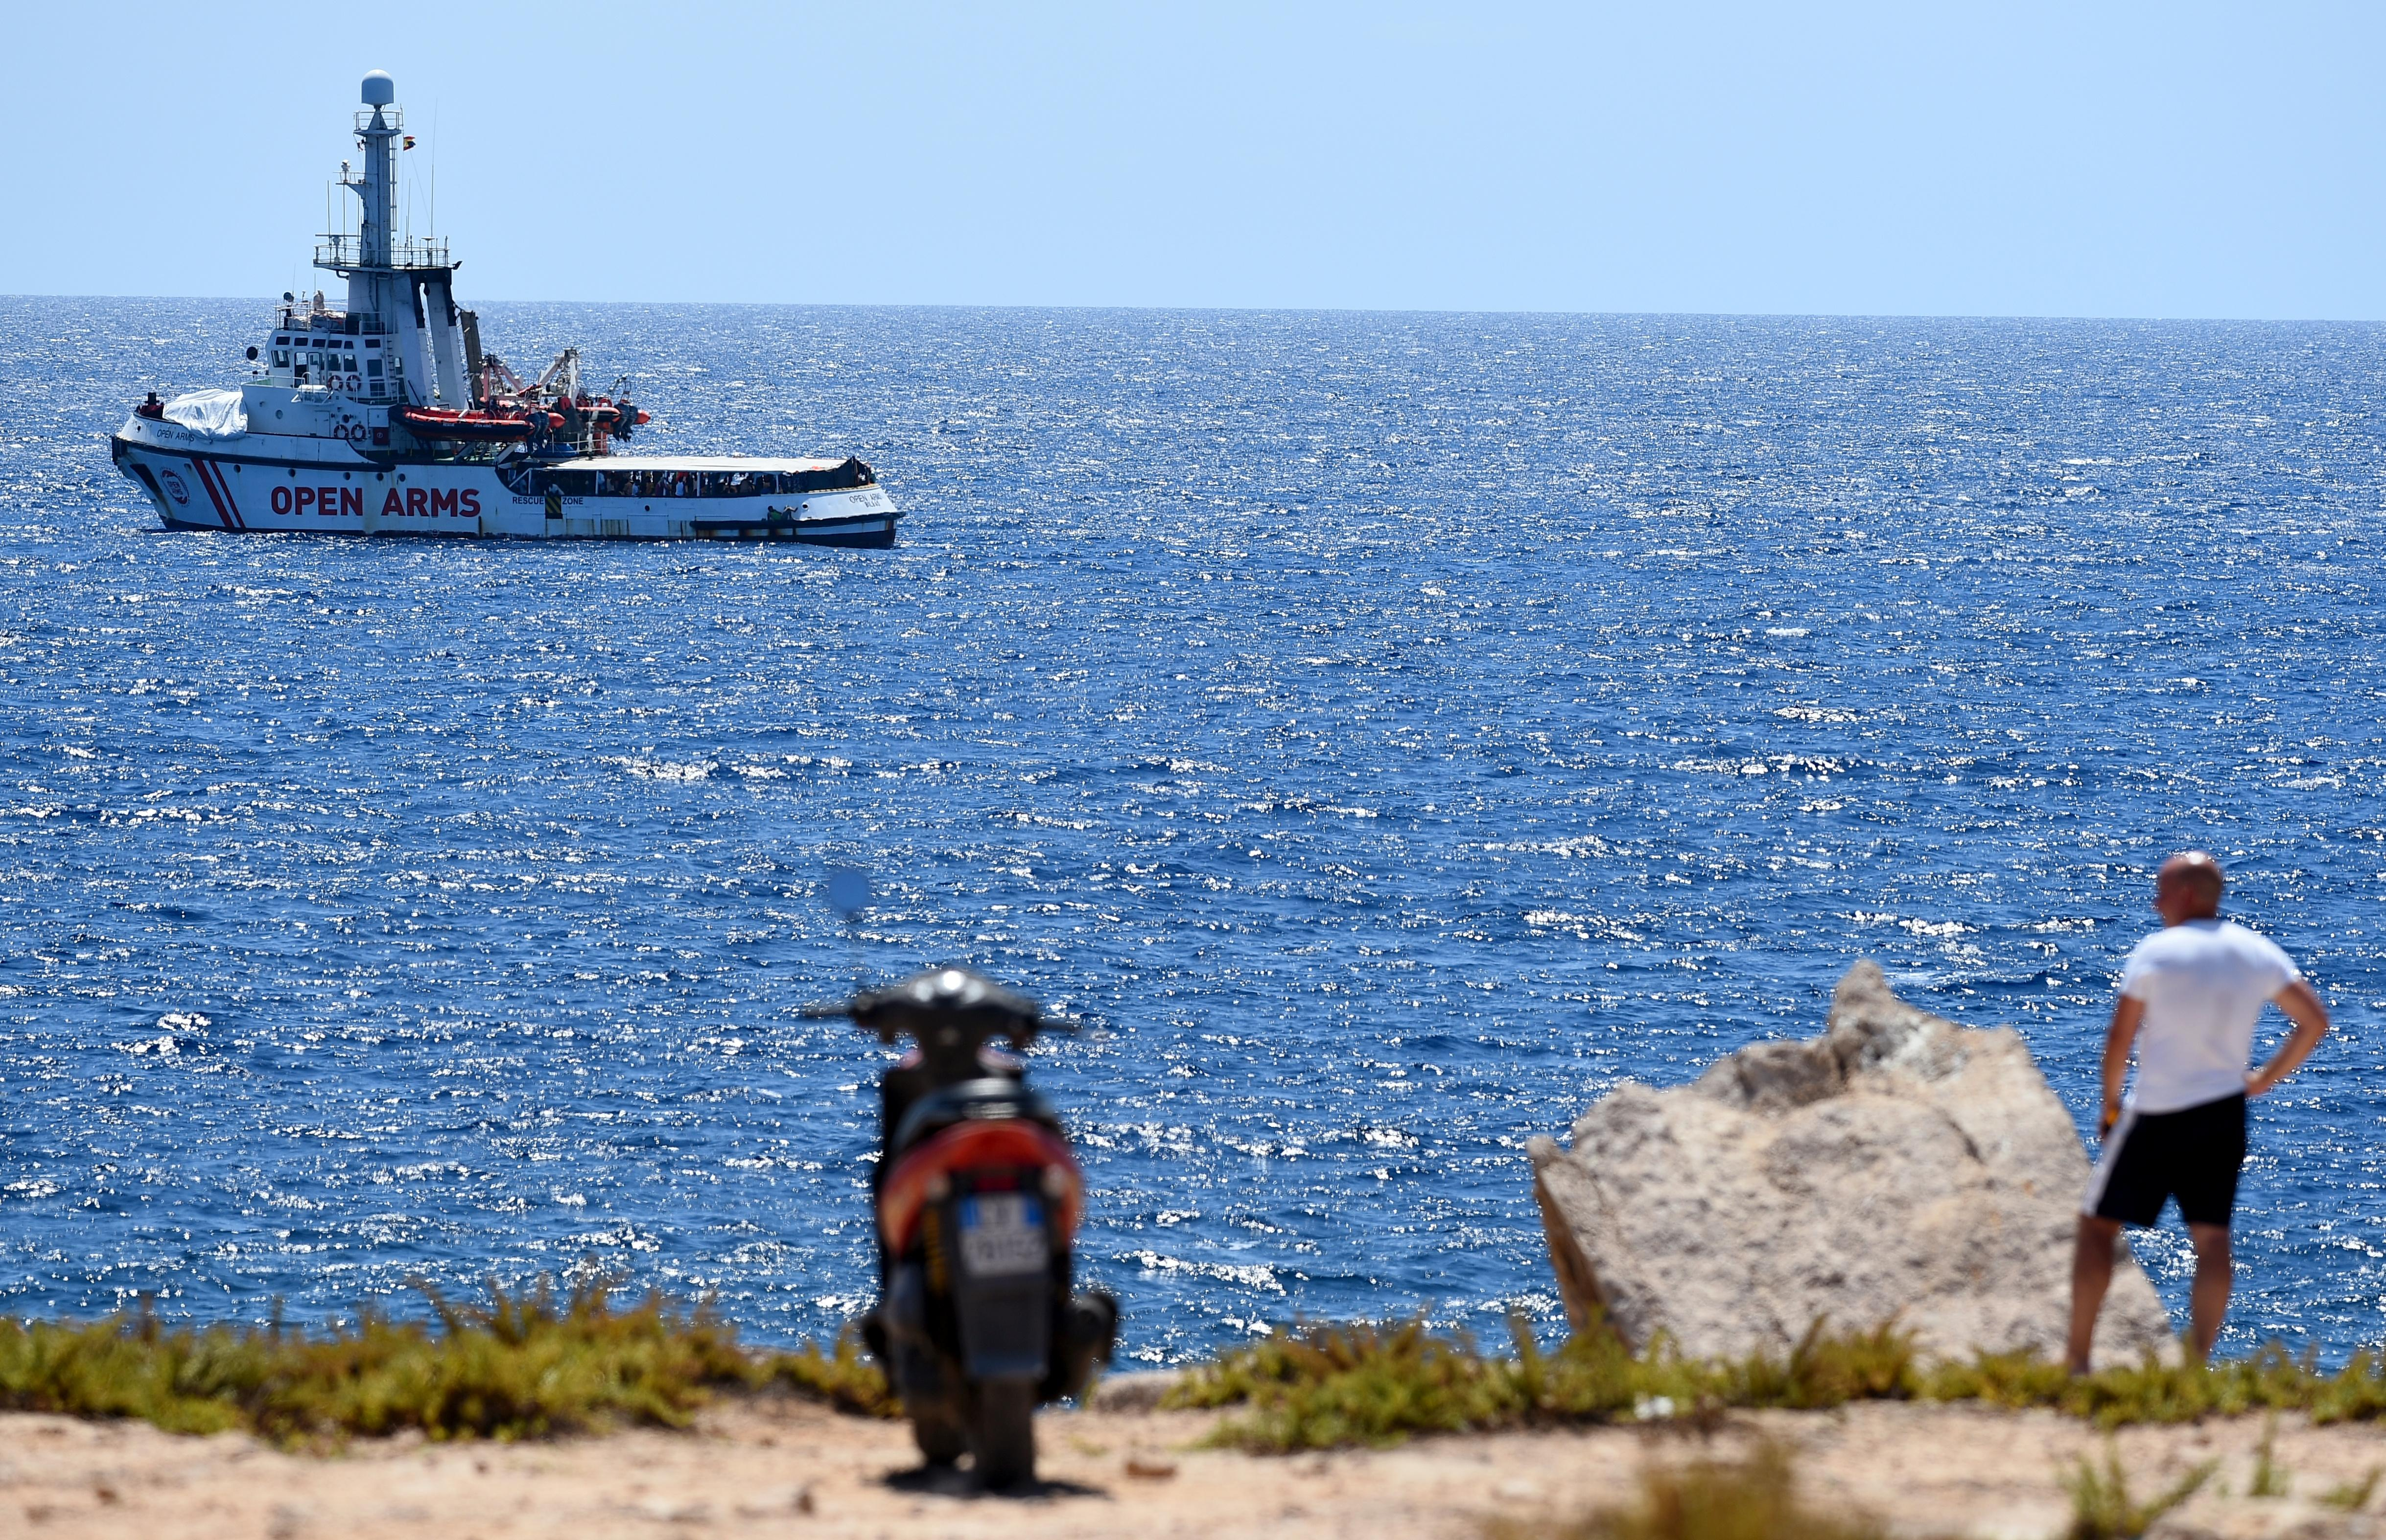 Open Arms suggests Italy take rescue ship migrants to Spain